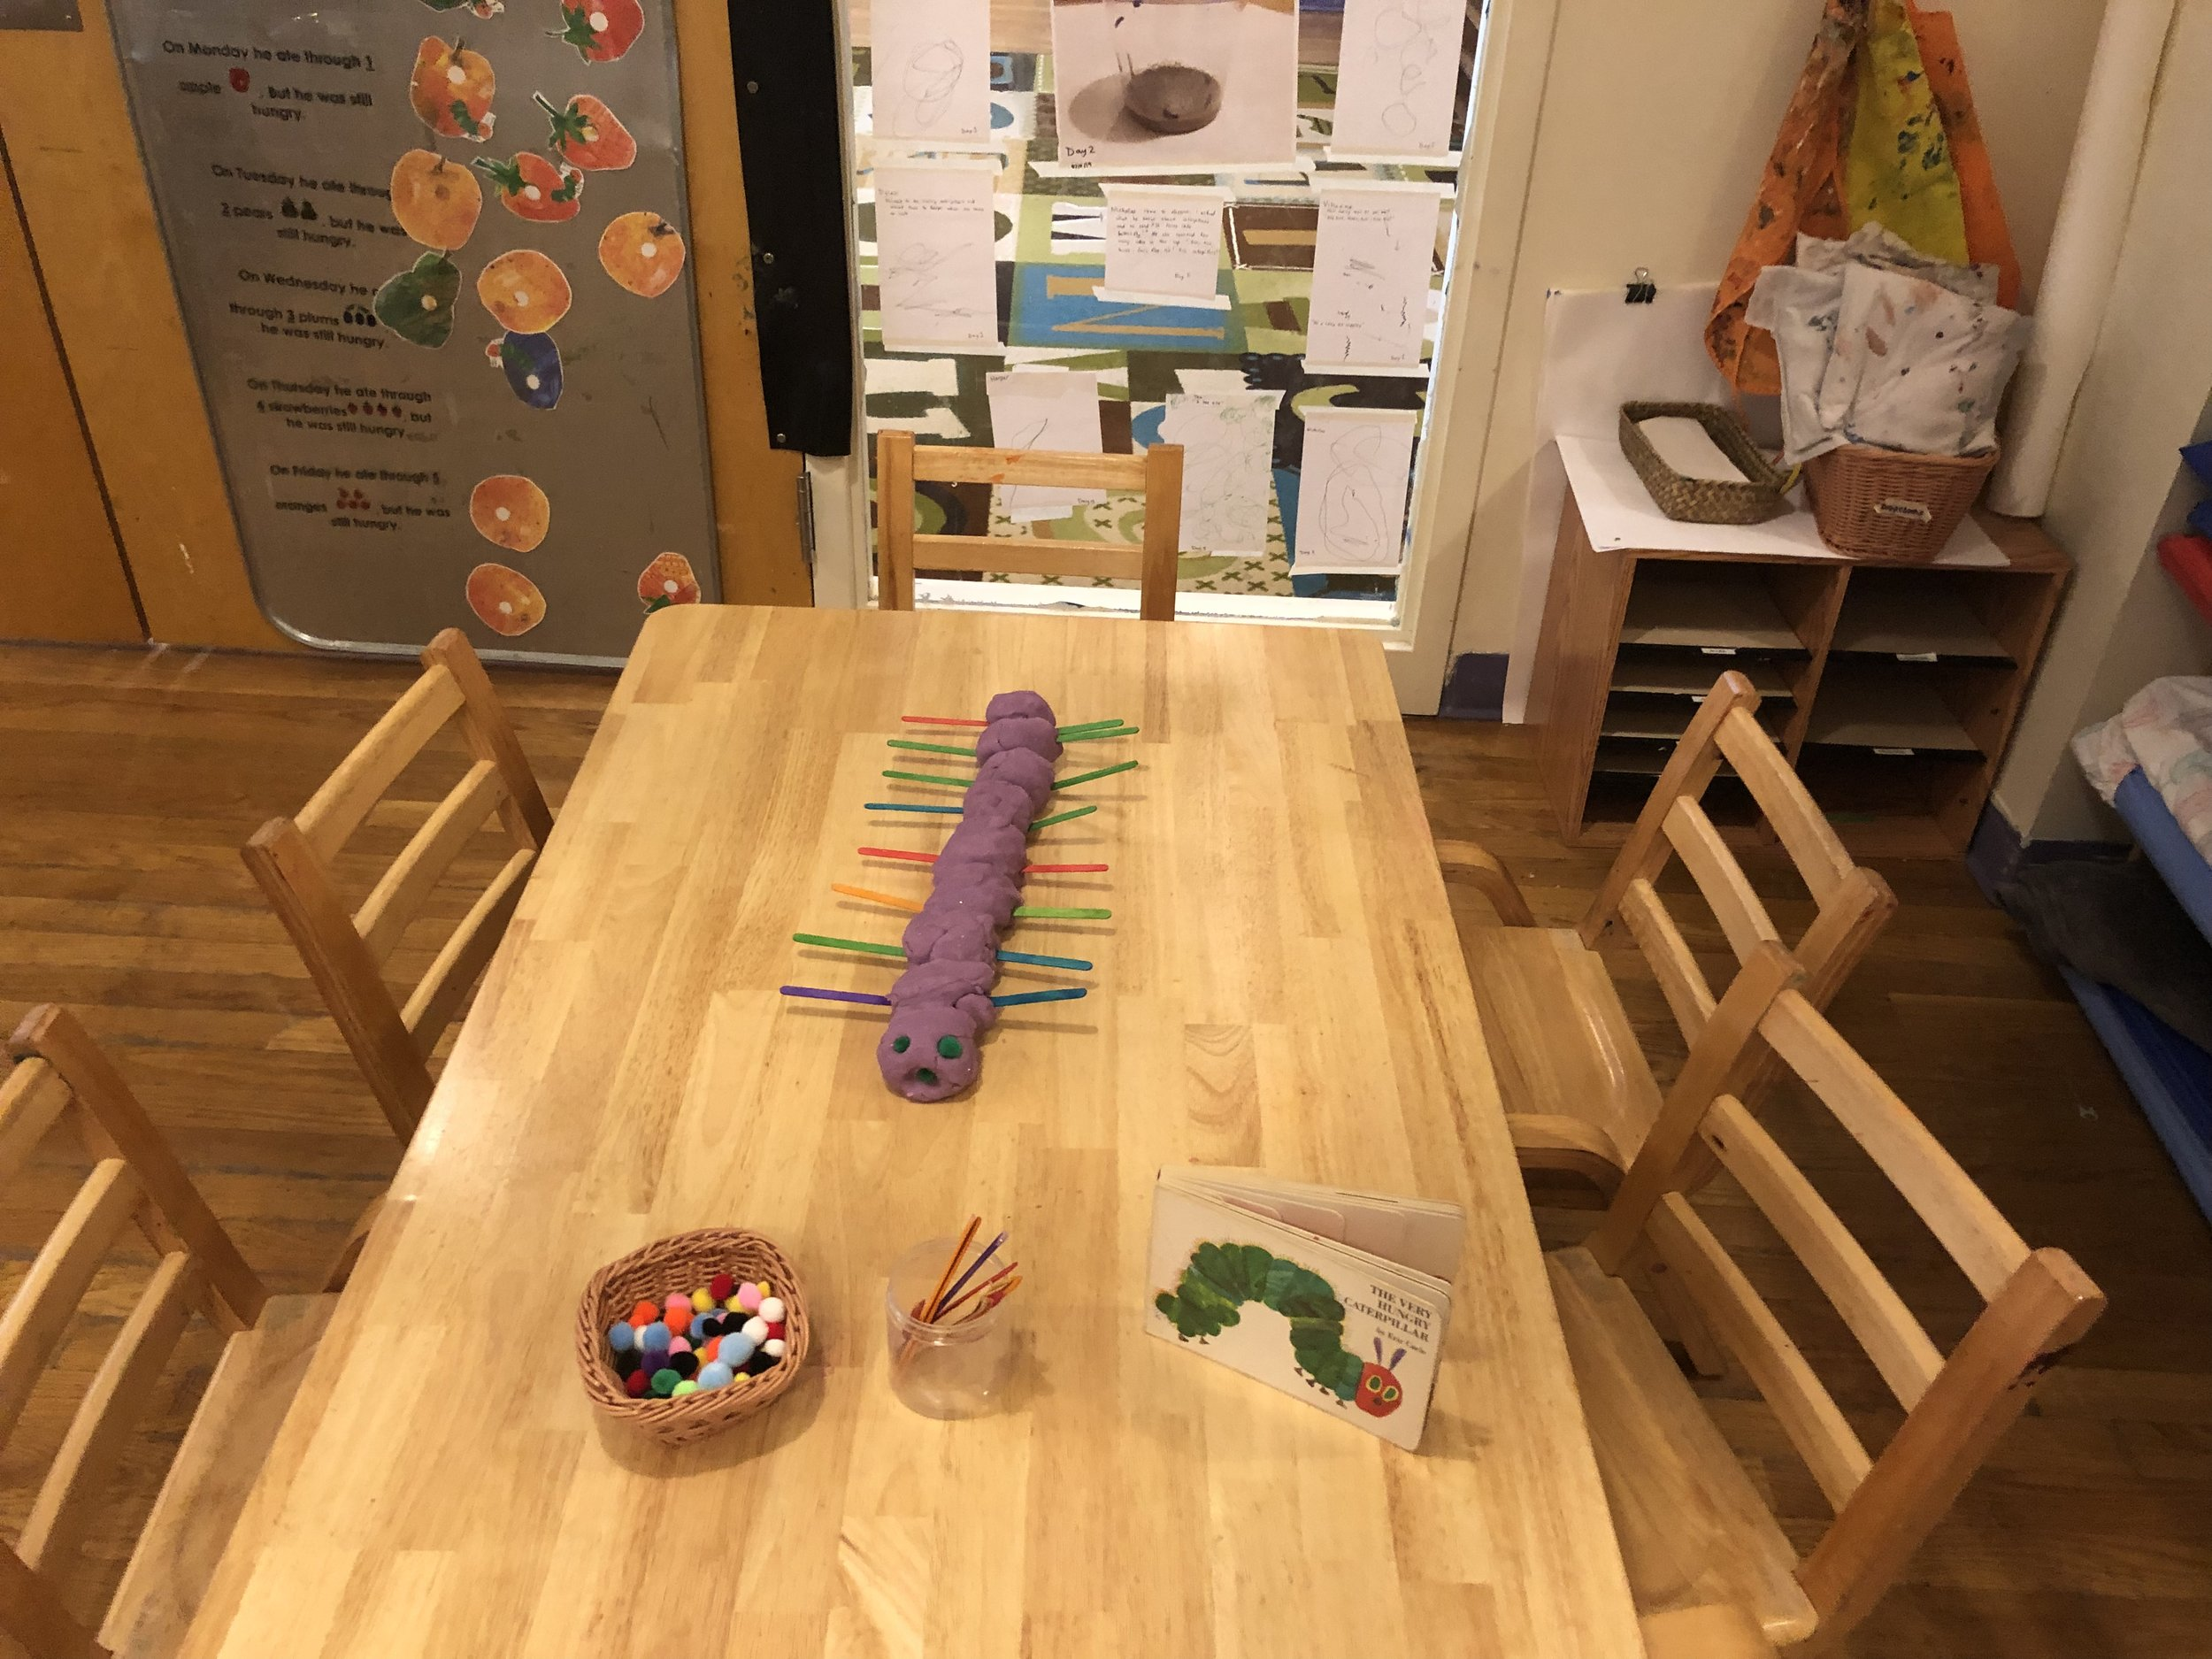 The Very Hungry Caterpillar by Eric Carle -